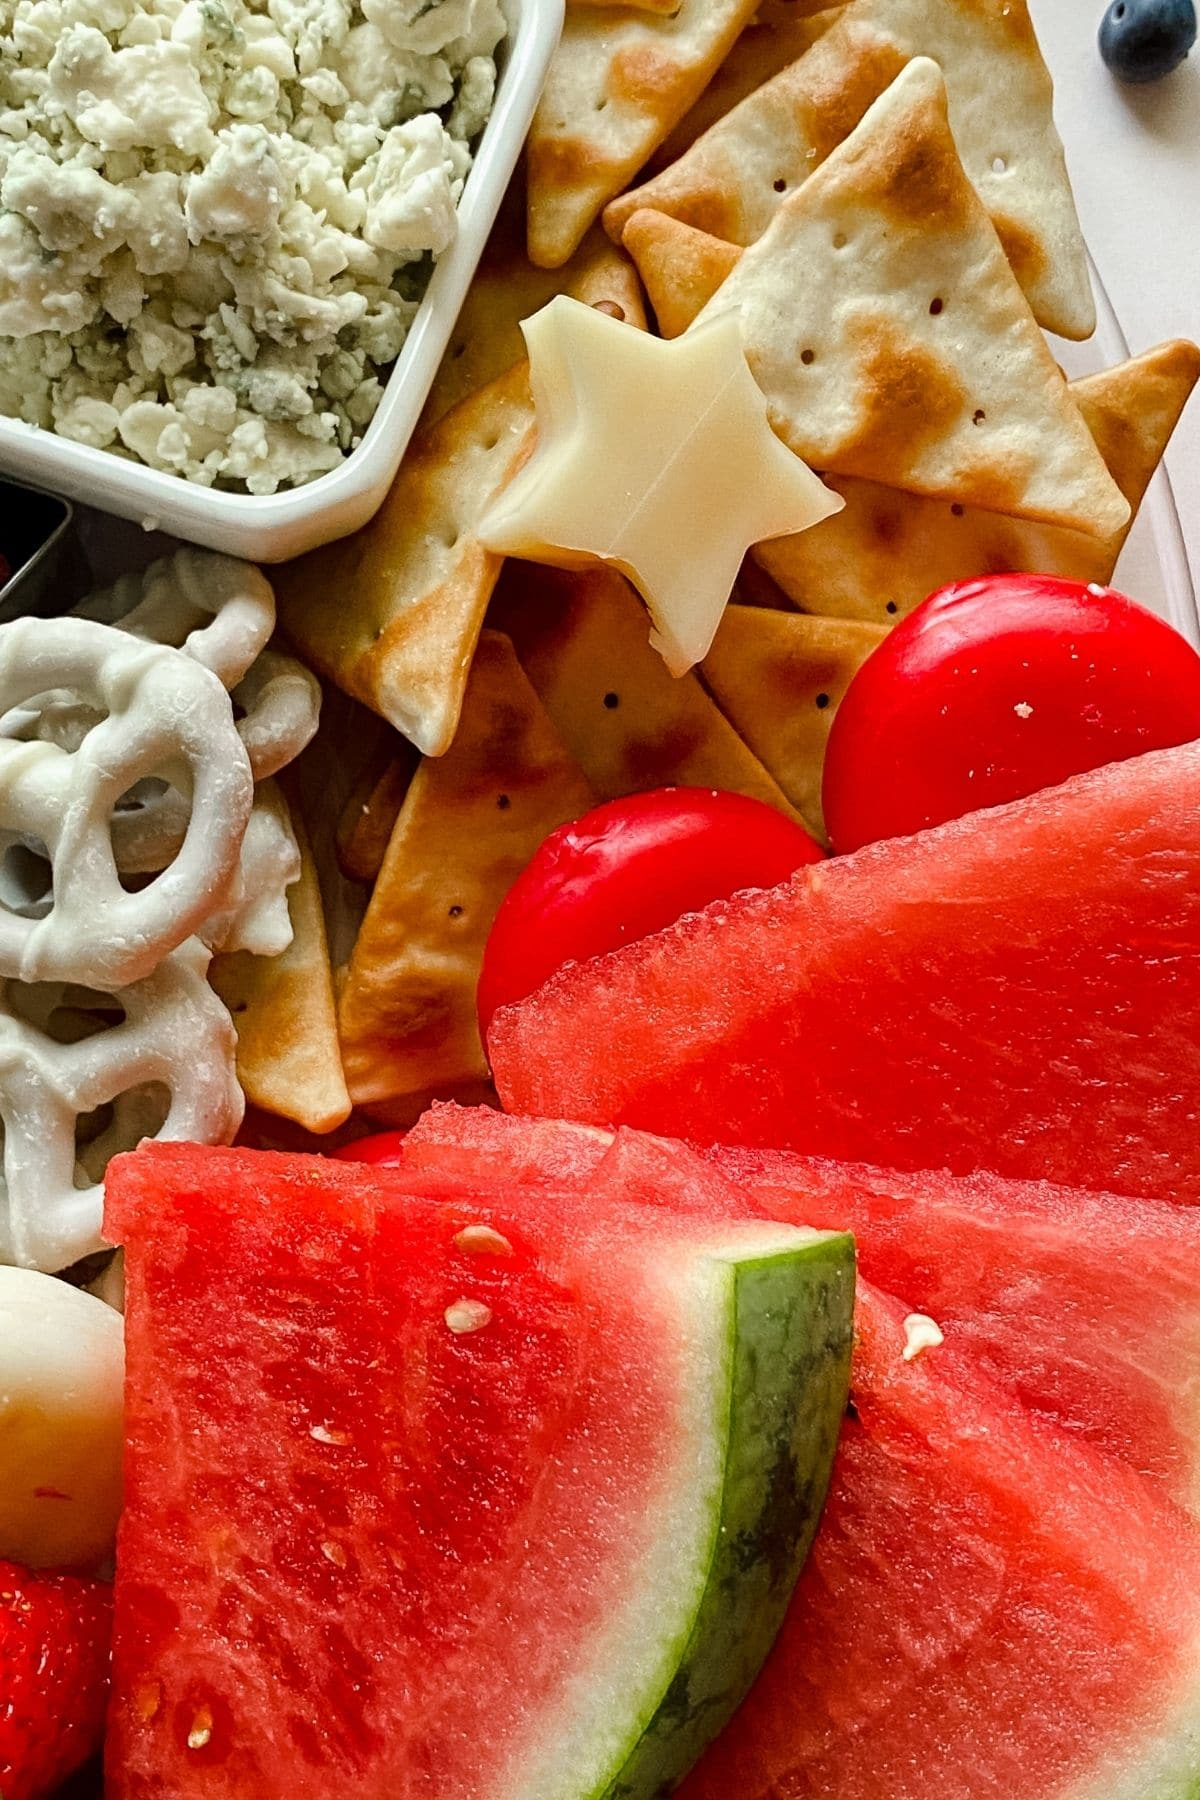 Watermelon wedges by star cheese and crackers